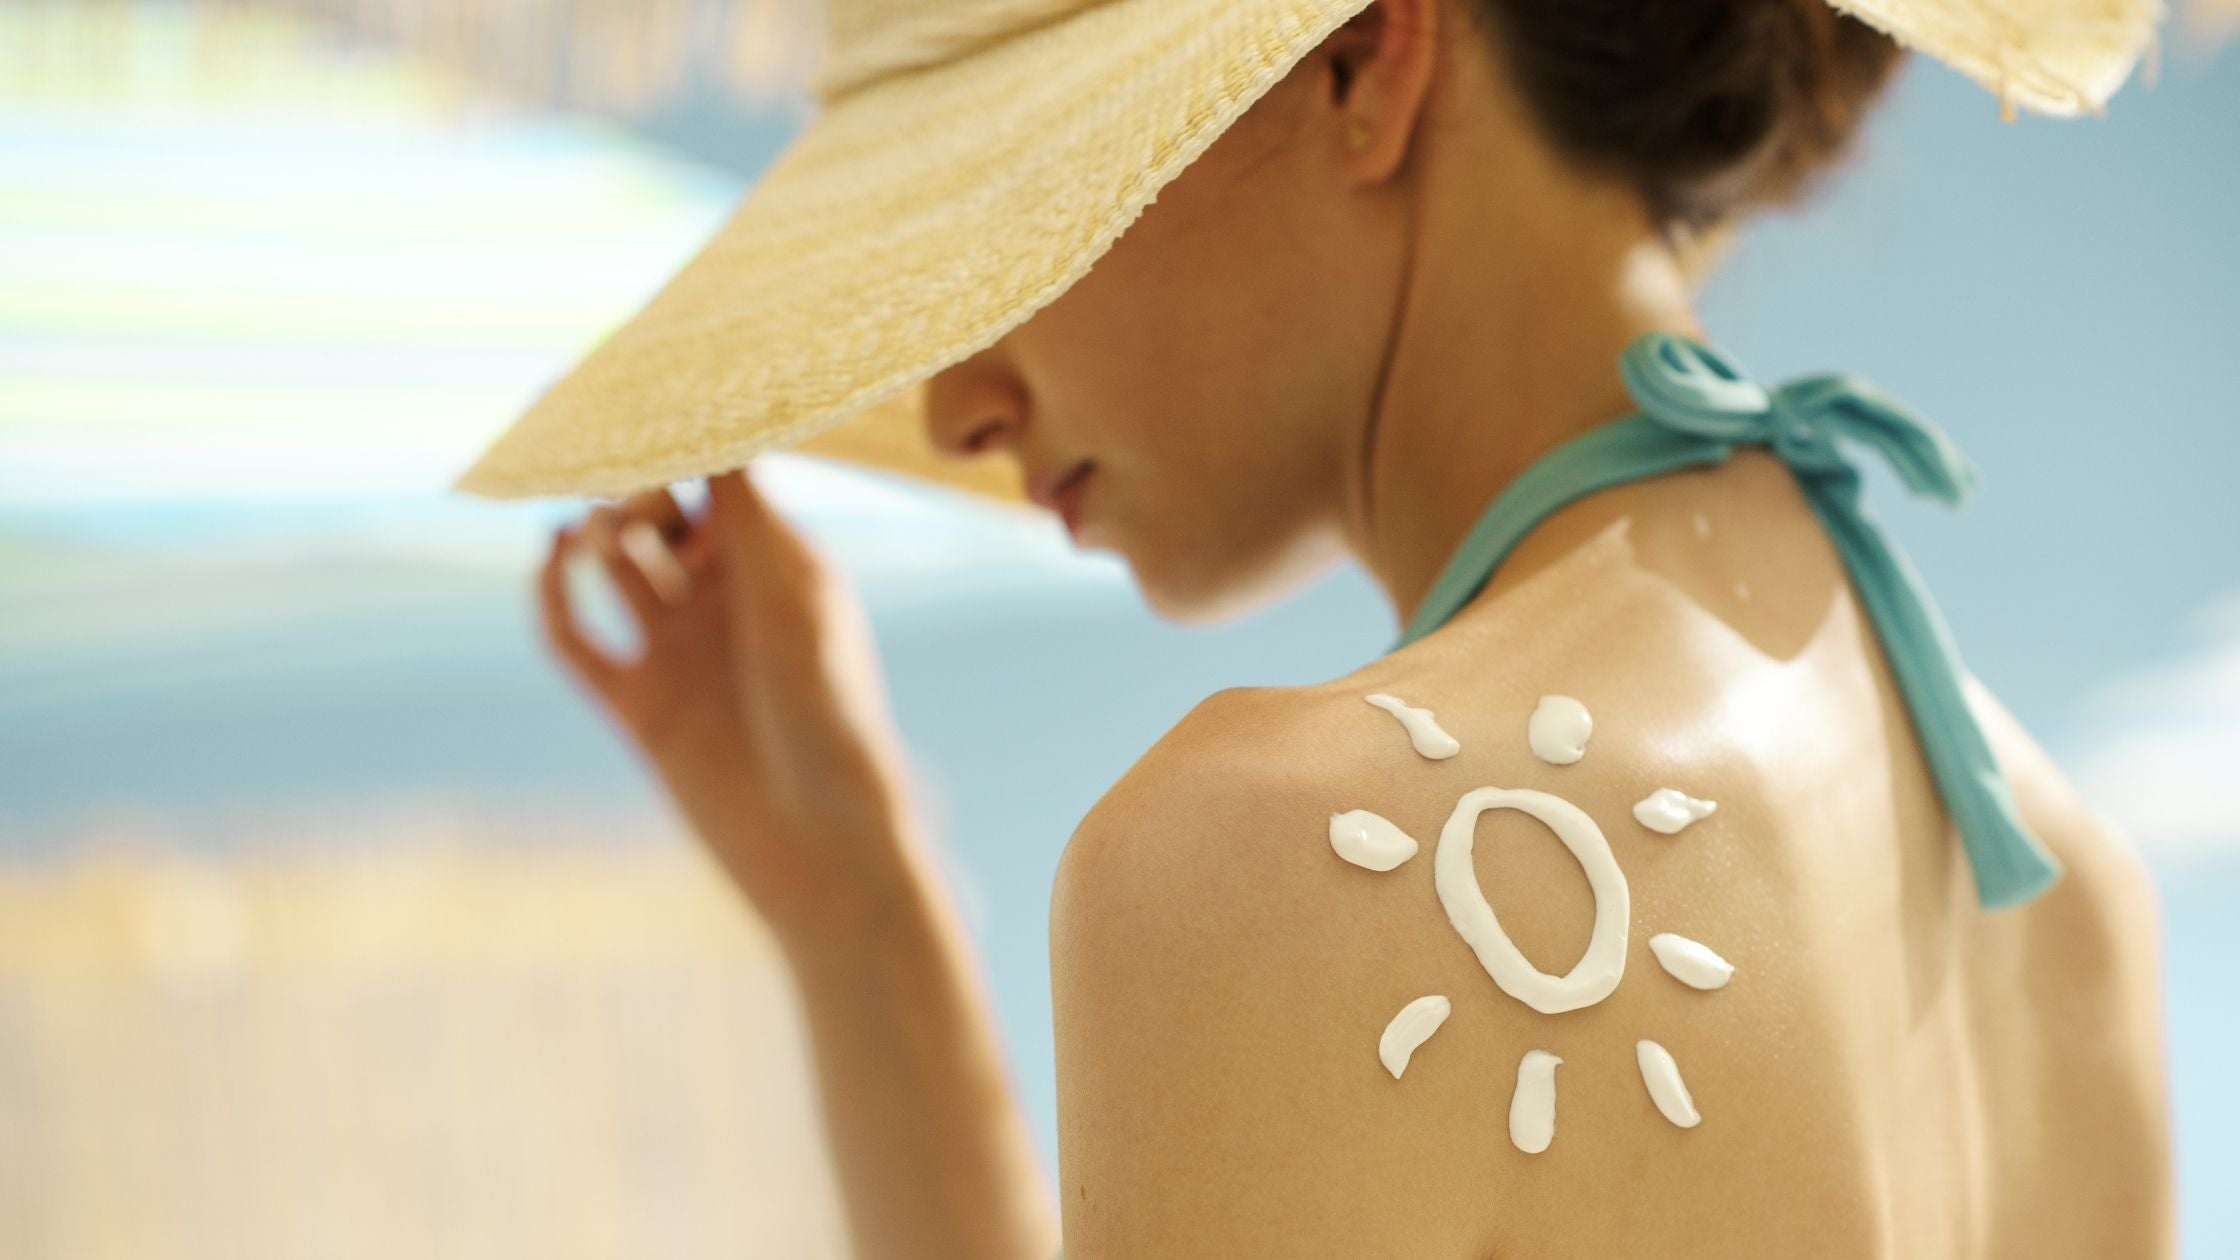 know more about Sunscreens